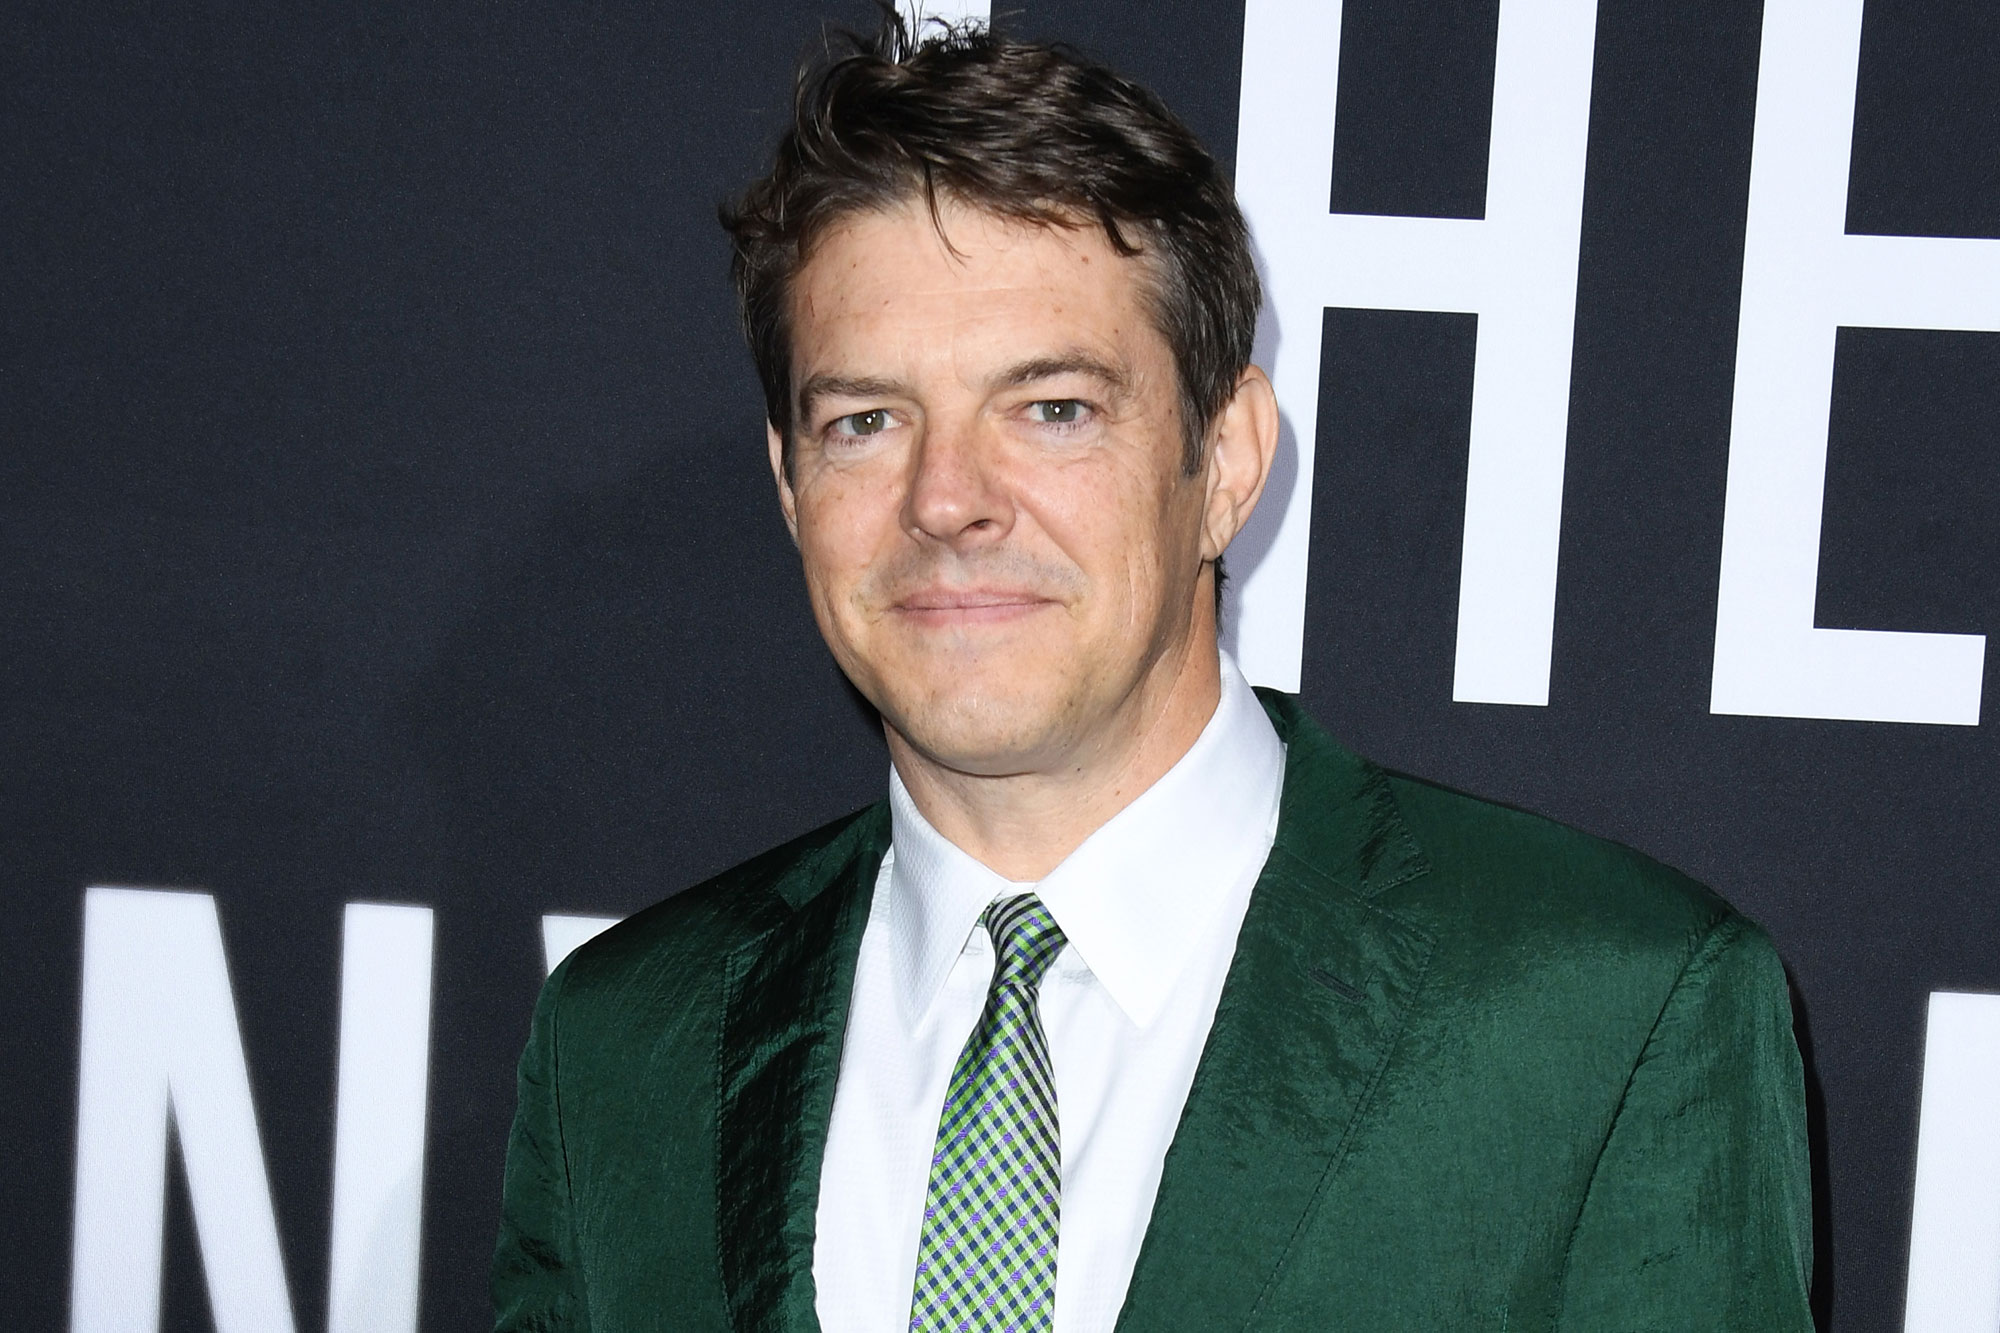 Halloween 2020 Producer You Should Have Left producer Jason Blum talks haunted houses and